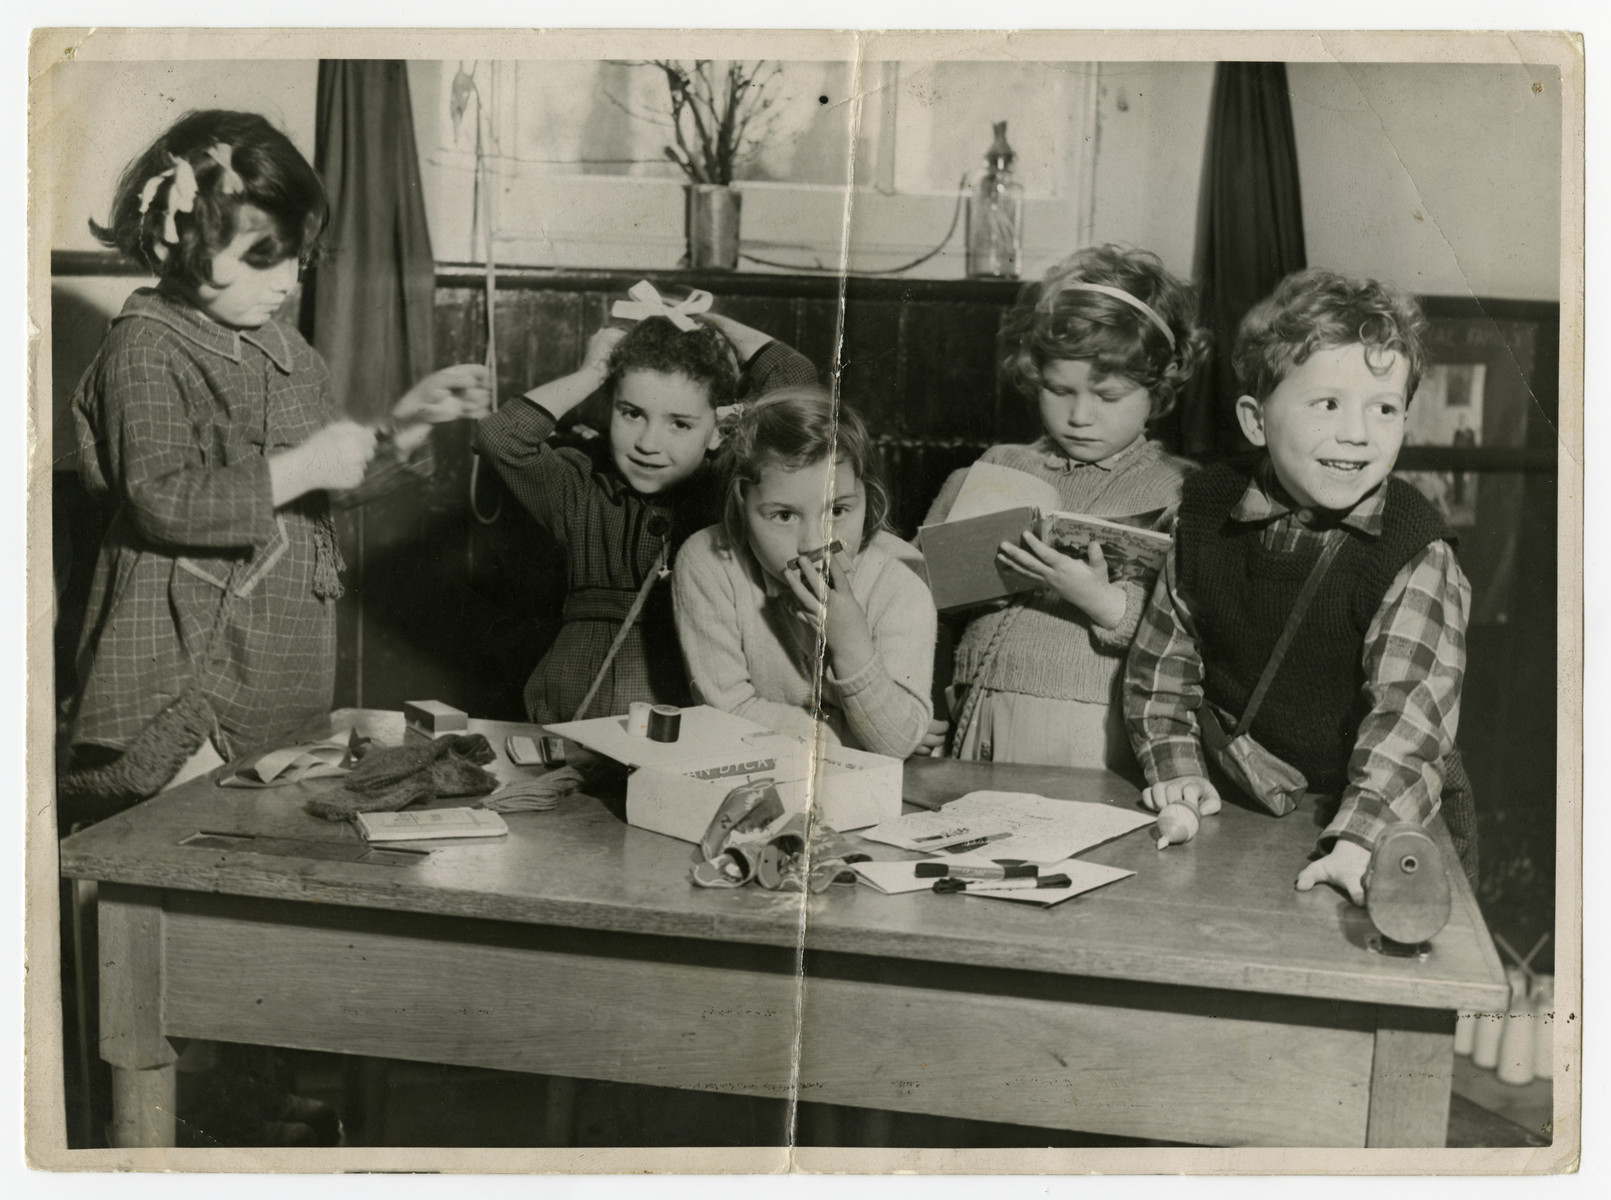 Young children in the Weir Courtney children's home gather by a table with art and sewing supplies.  From left to right are unidentified, Zdenka Husserl, Tanja Muench, Letzi Sonnenschein, and Denny Muench.